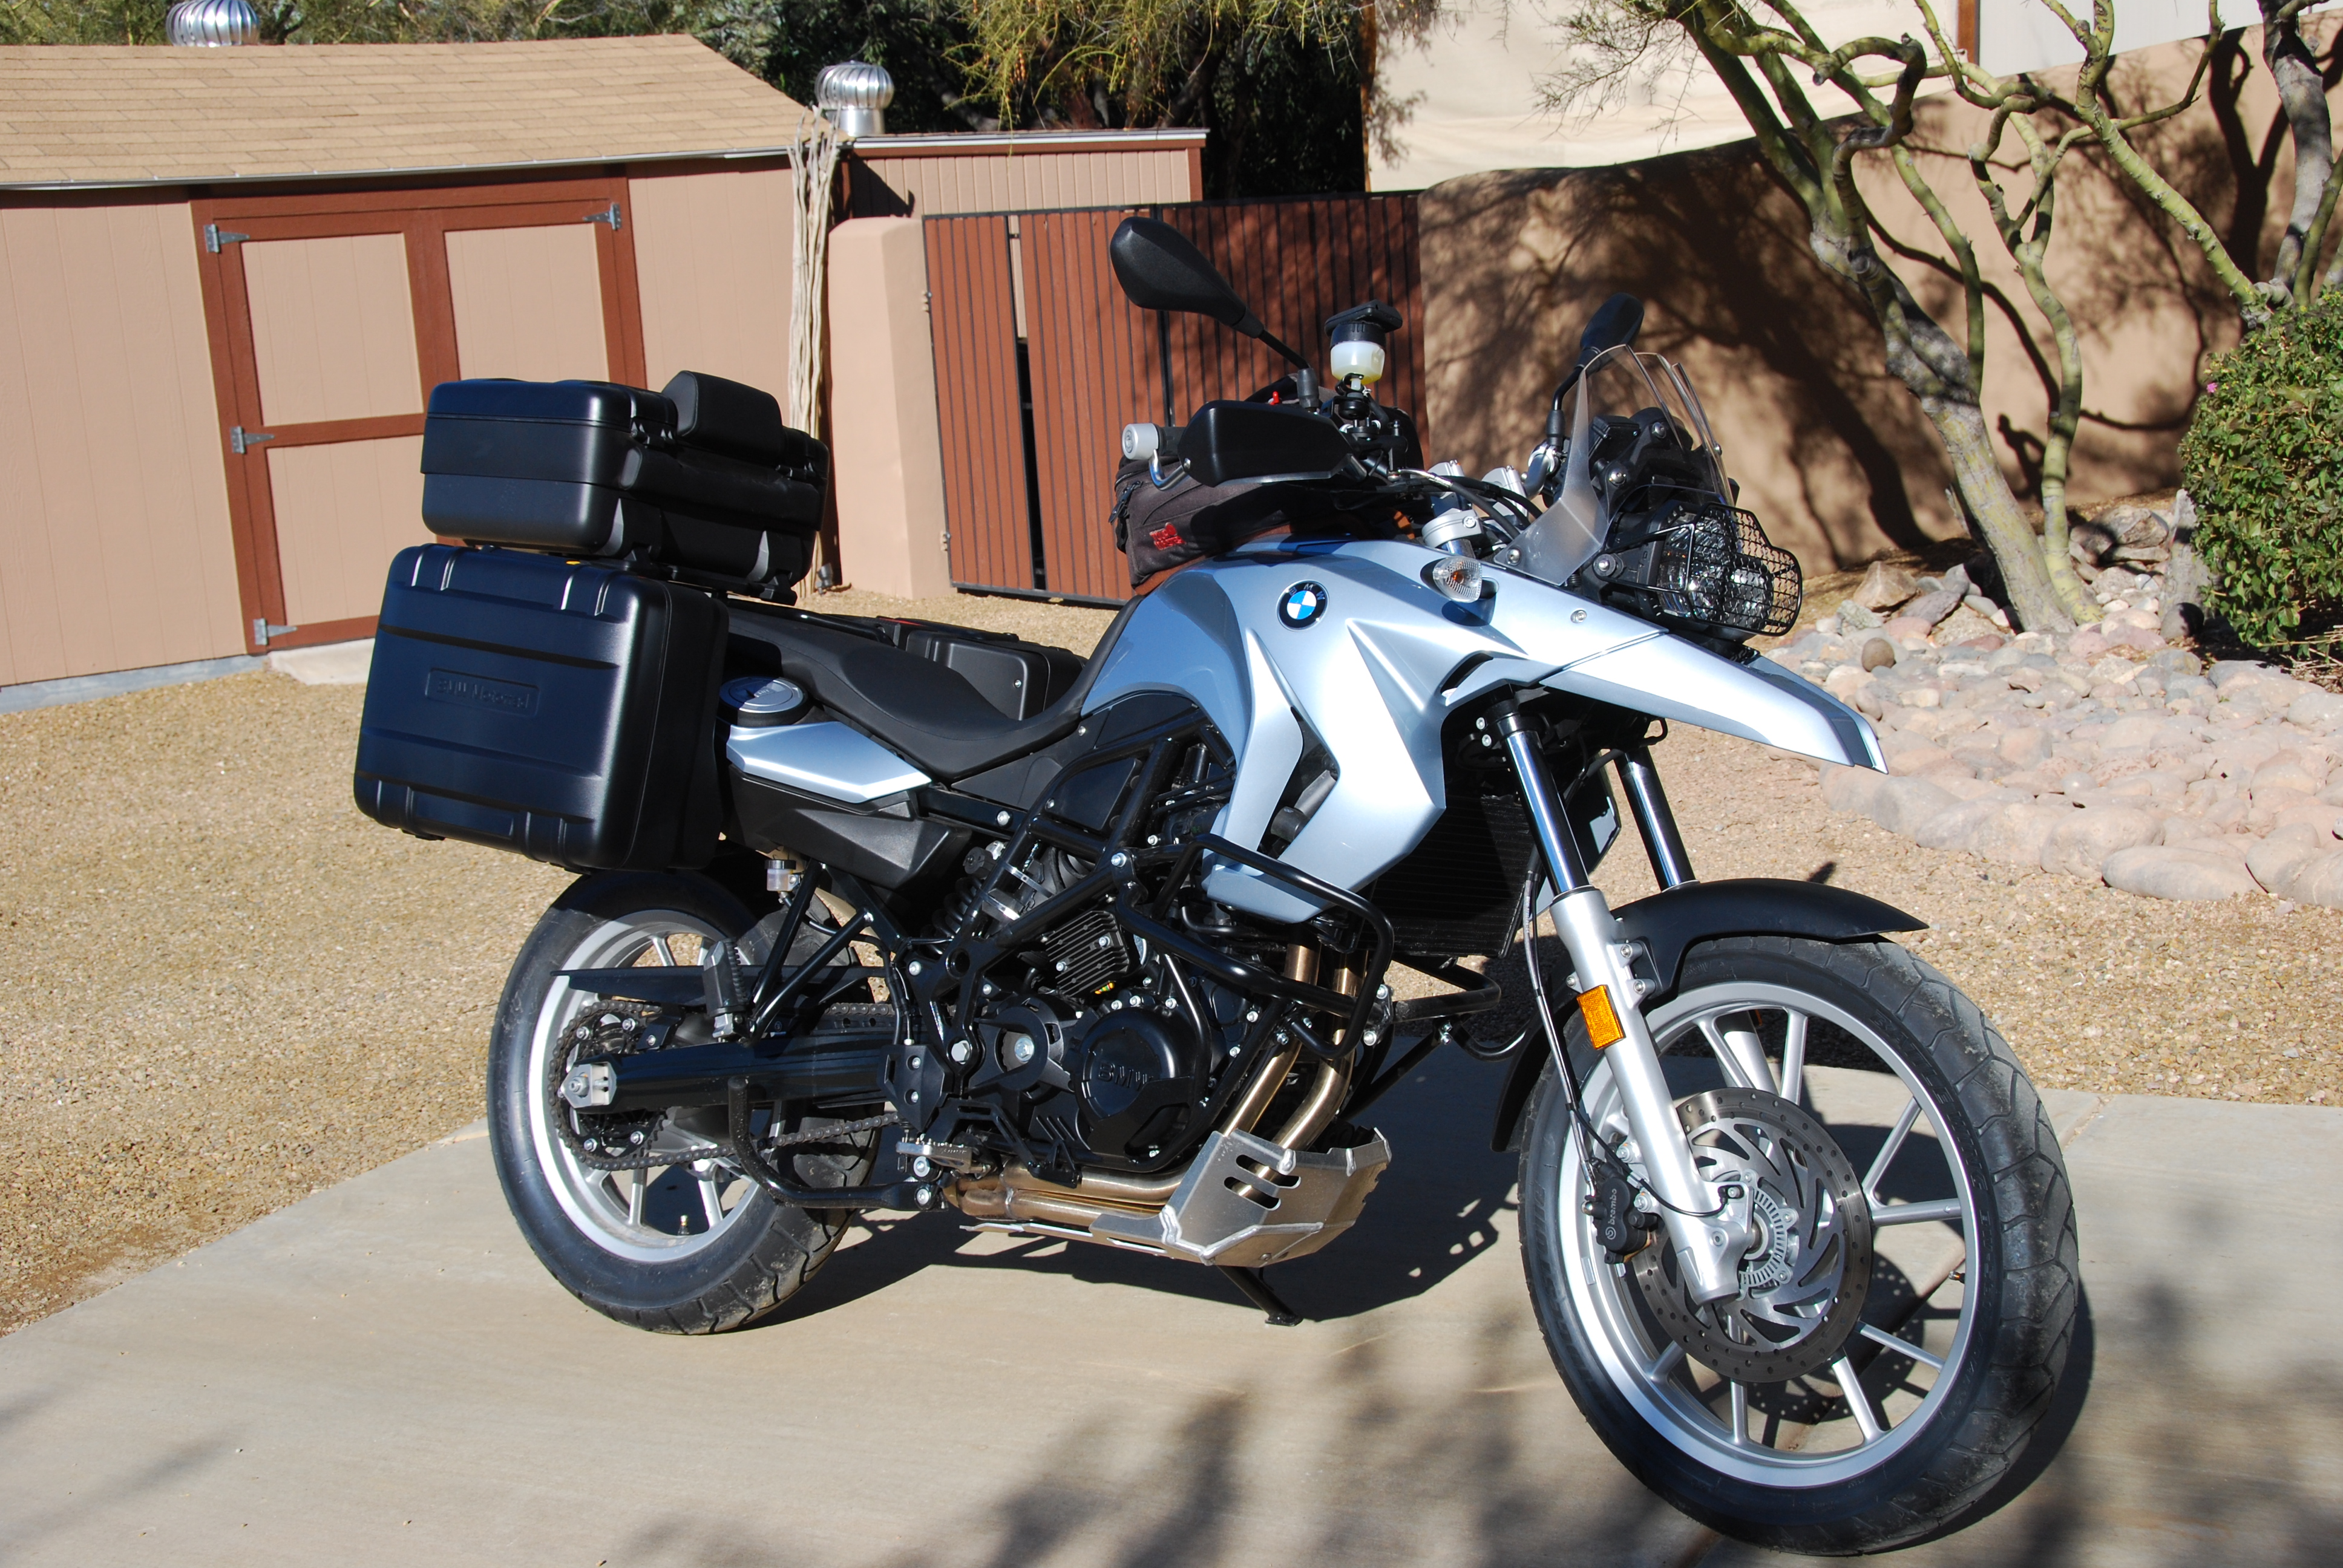 bmw f650gs for ny ca advice and opinions please. Black Bedroom Furniture Sets. Home Design Ideas